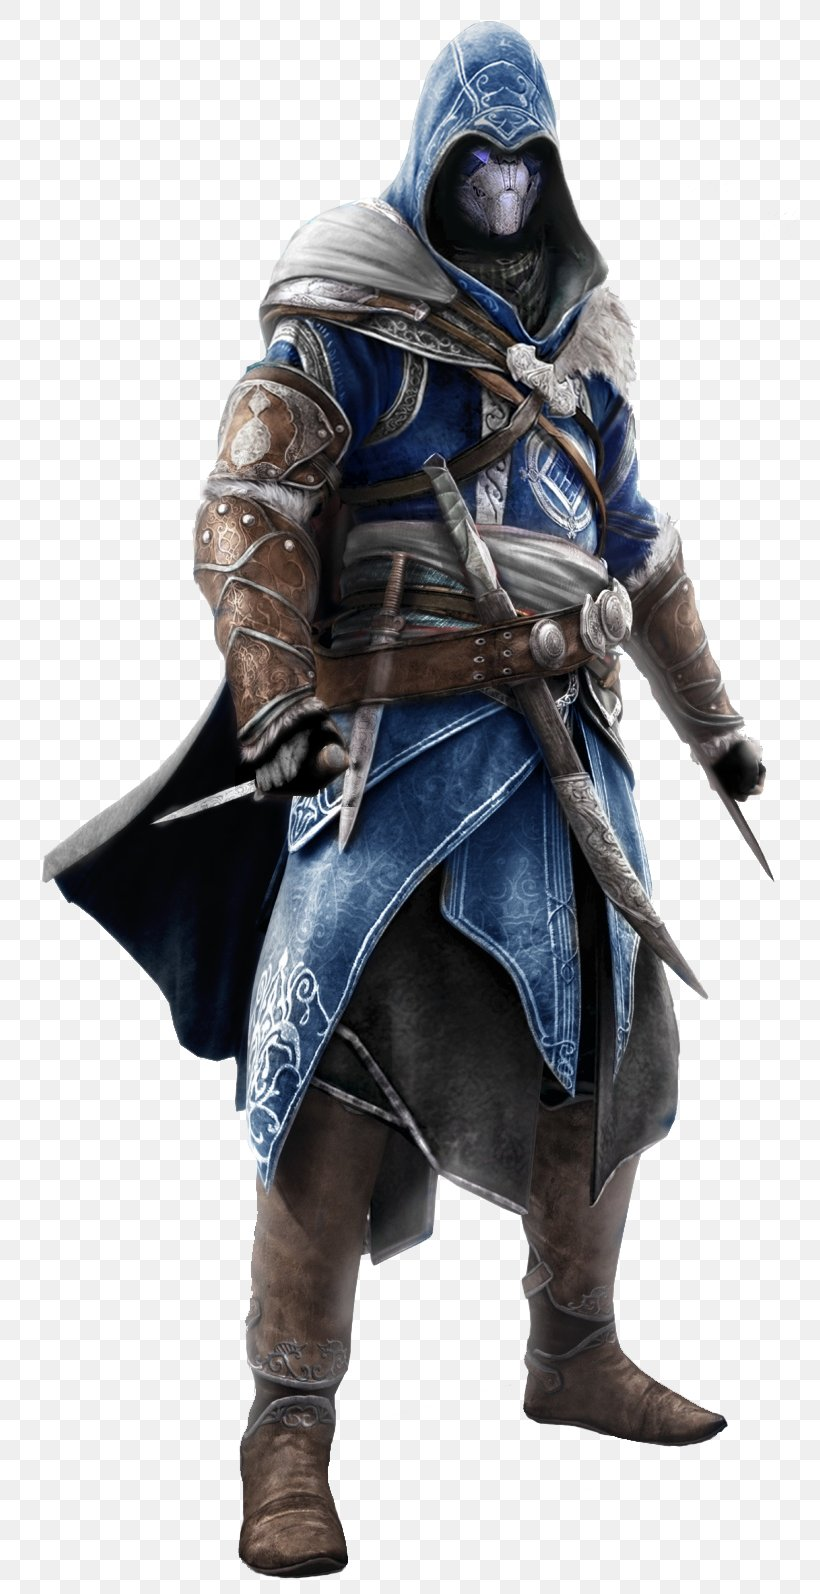 Assassin's Creed: Revelations Assassin's Creed: Brotherhood Assassin's Creed III Ezio Auditore, PNG, 778x1594px, Assassins Creed Revelations, Action Figure, Armour, Assassins, Assassins Creed Download Free